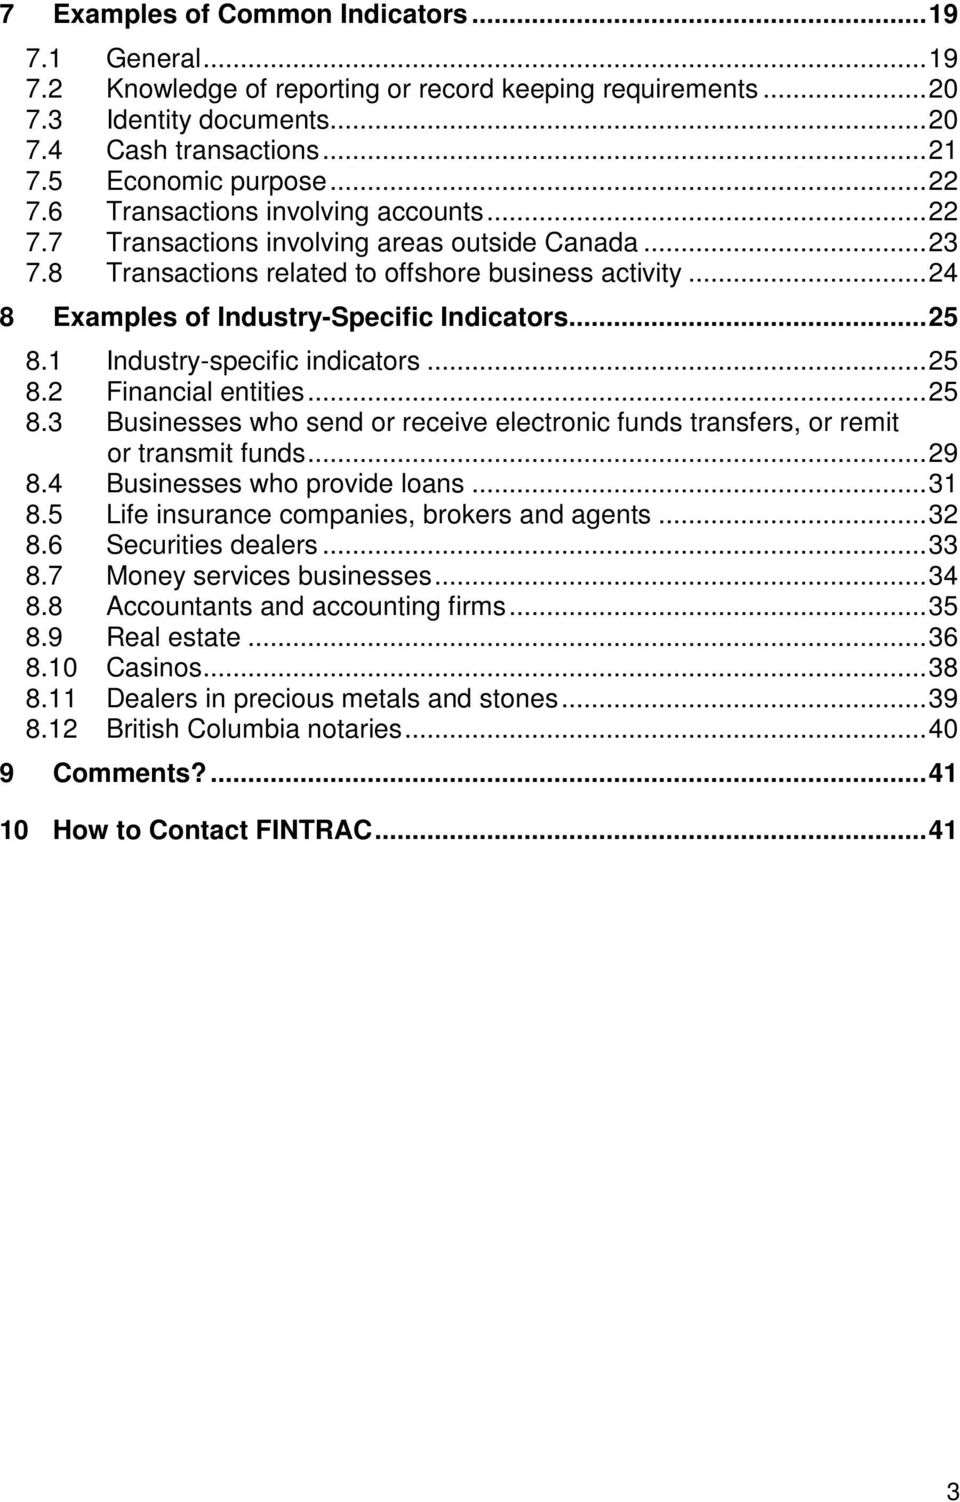 .. 24 8 Examples of Industry-Specific Indicators... 25 8.1 Industry-specific indicators... 25 8.2 Financial entities... 25 8.3 Businesses who send or receive electronic funds transfers, or remit or transmit funds.